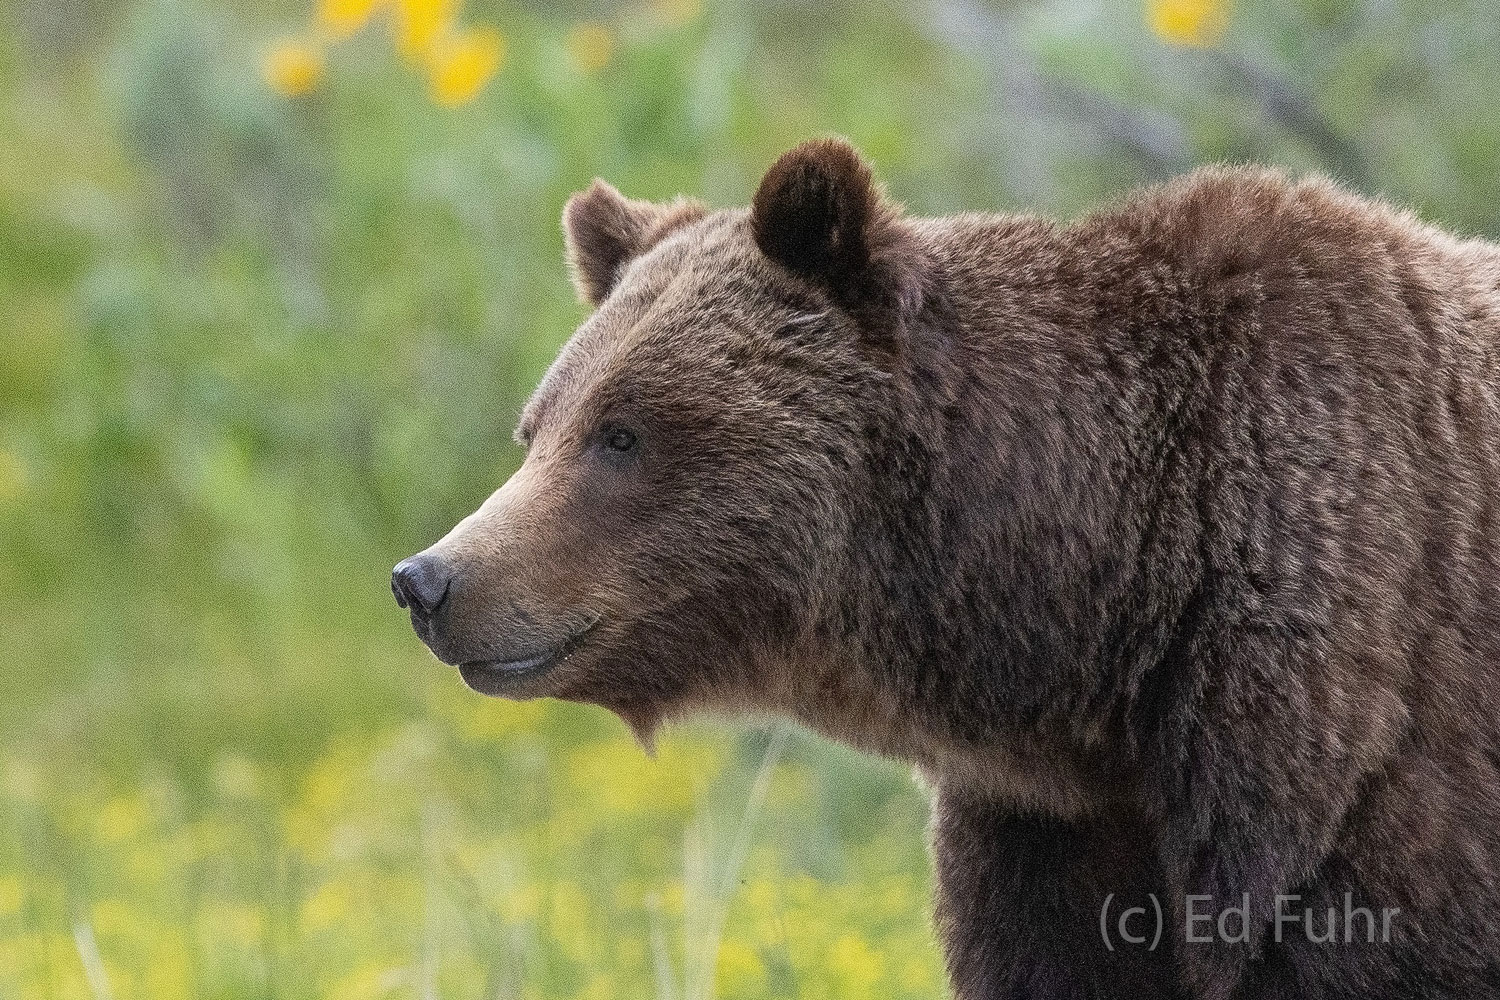 399, grizzly, 610, subadult, grizzlies, cub, quad, summer, grand teton, , photo